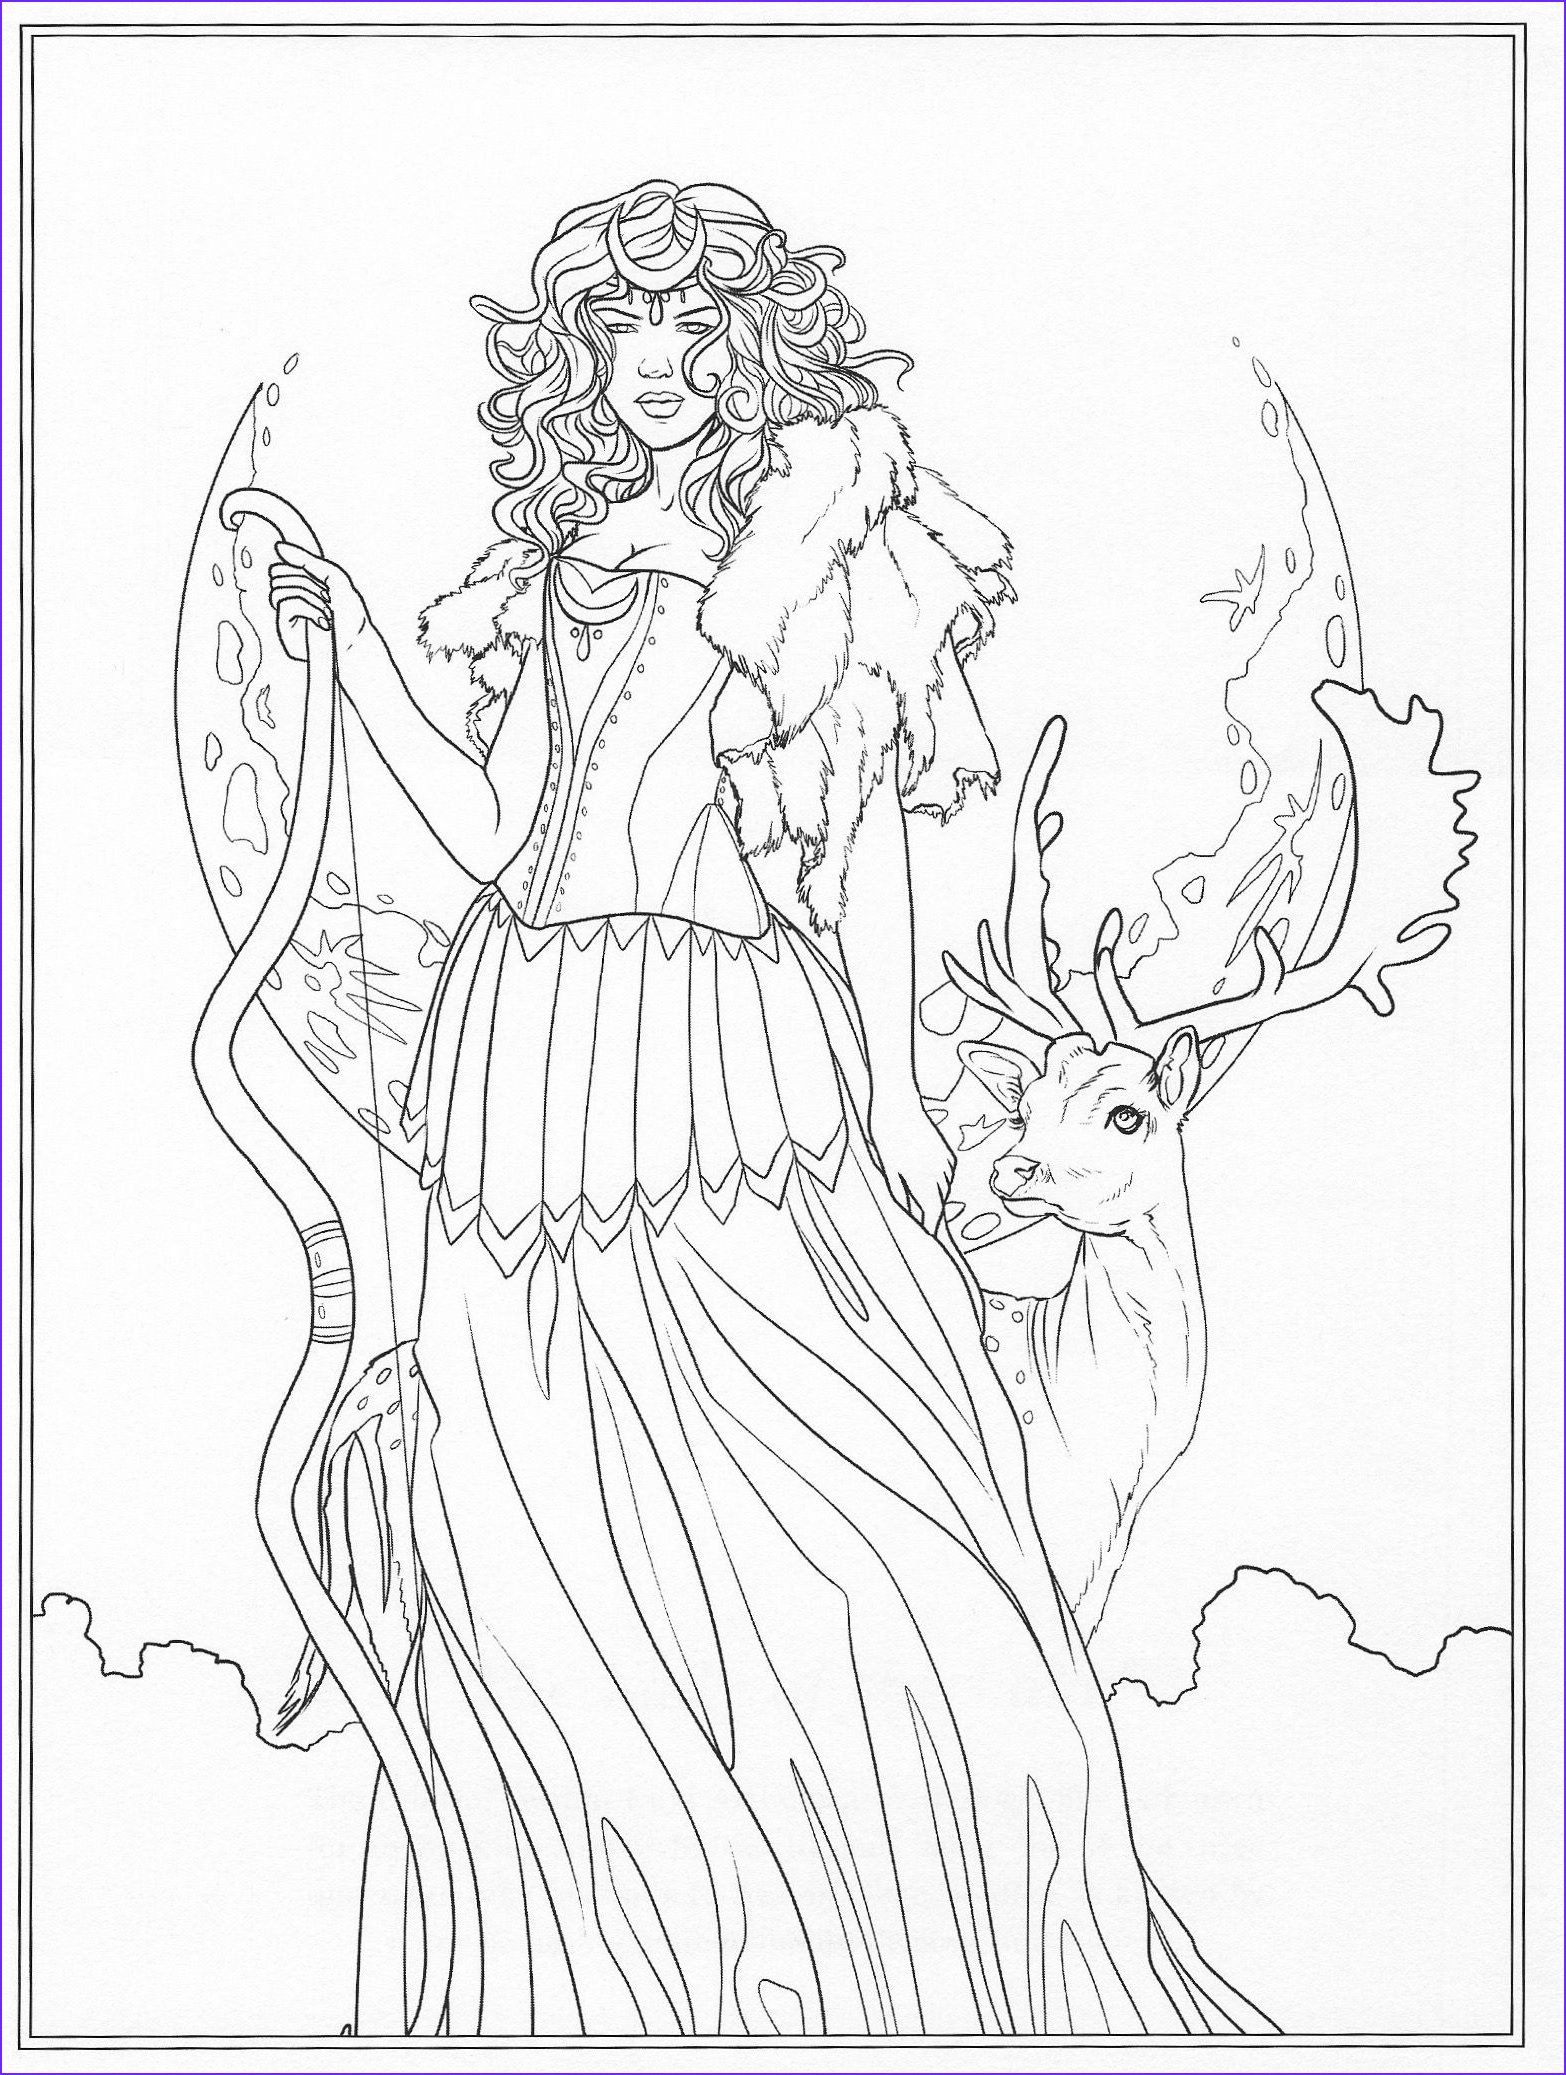 Blank Coloring Pages Unique Stock Pin by Val Wilson On Coloring Pages